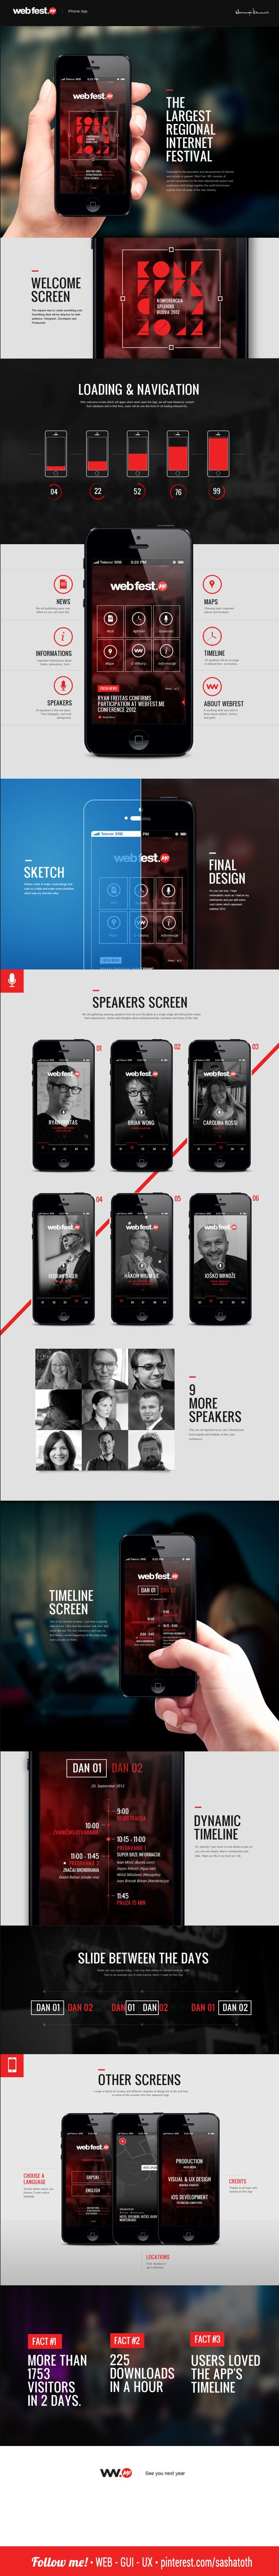 WebFest - iPhone App on Behance *** Web Fest .ME Conference is not just the conference organized by the web people for the web people. It is the gathering of all those who want to experience inexhaustible energy behind running a startup, learn more about the recent developments in online marketing and web-based businesses and ultimately about using tech to take each and every aspect of their everyday lives to the next level. - by Nemanja Ivanovic, via Behance *** #app #gui #ui #behance